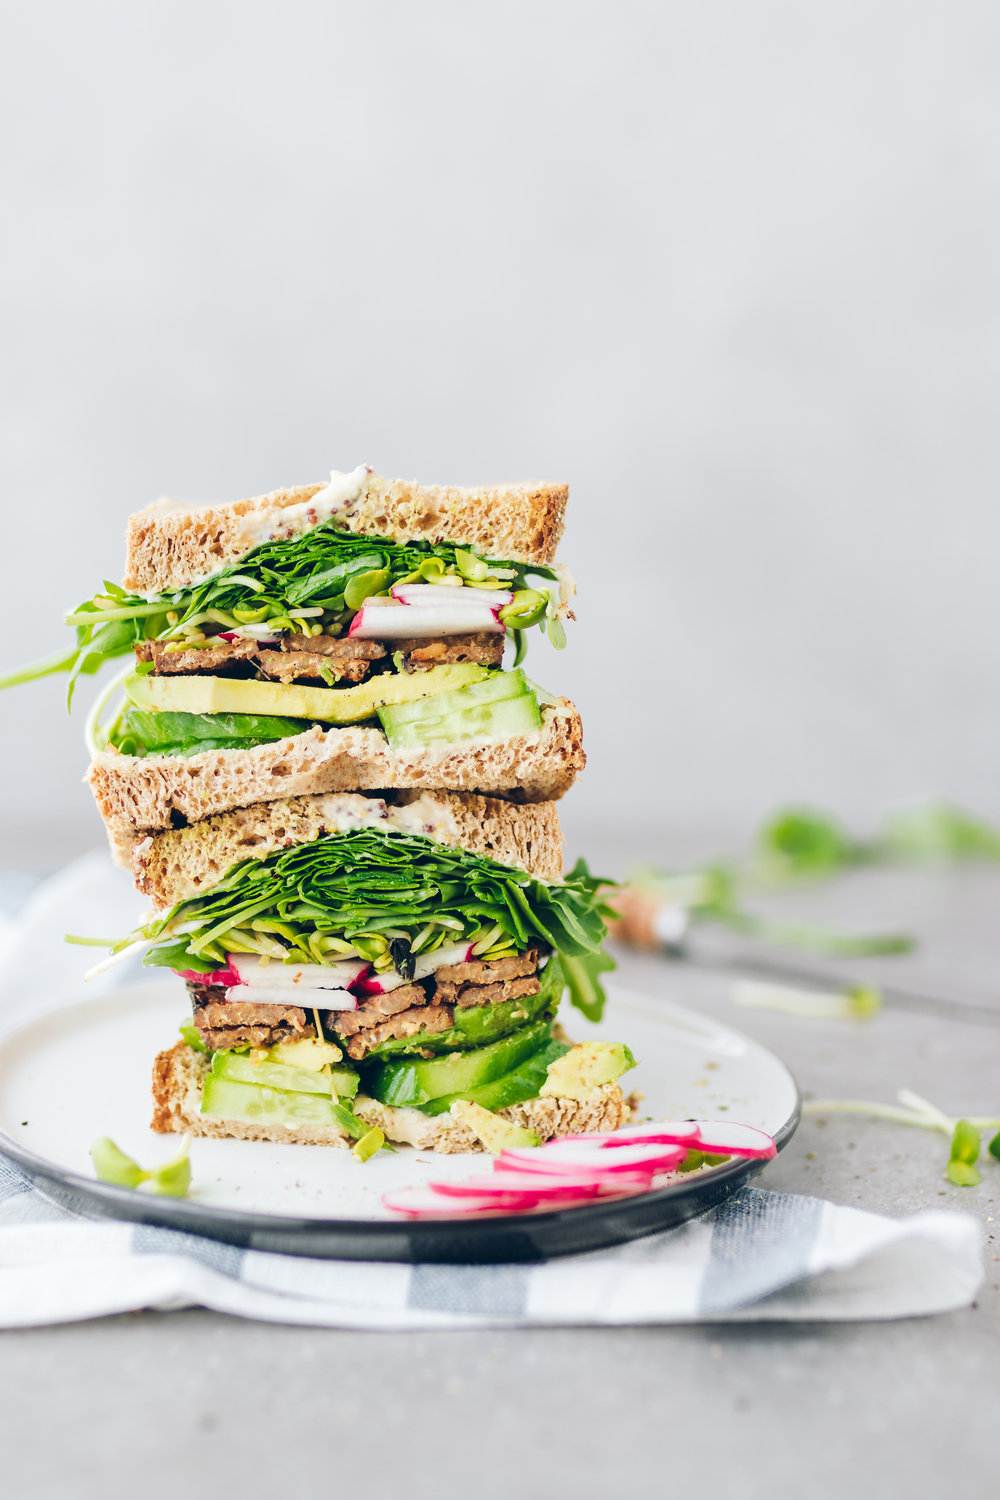 Fresh Spring Sandwich with Tempeh Bacon, Arugula and Broccoli Sprouts